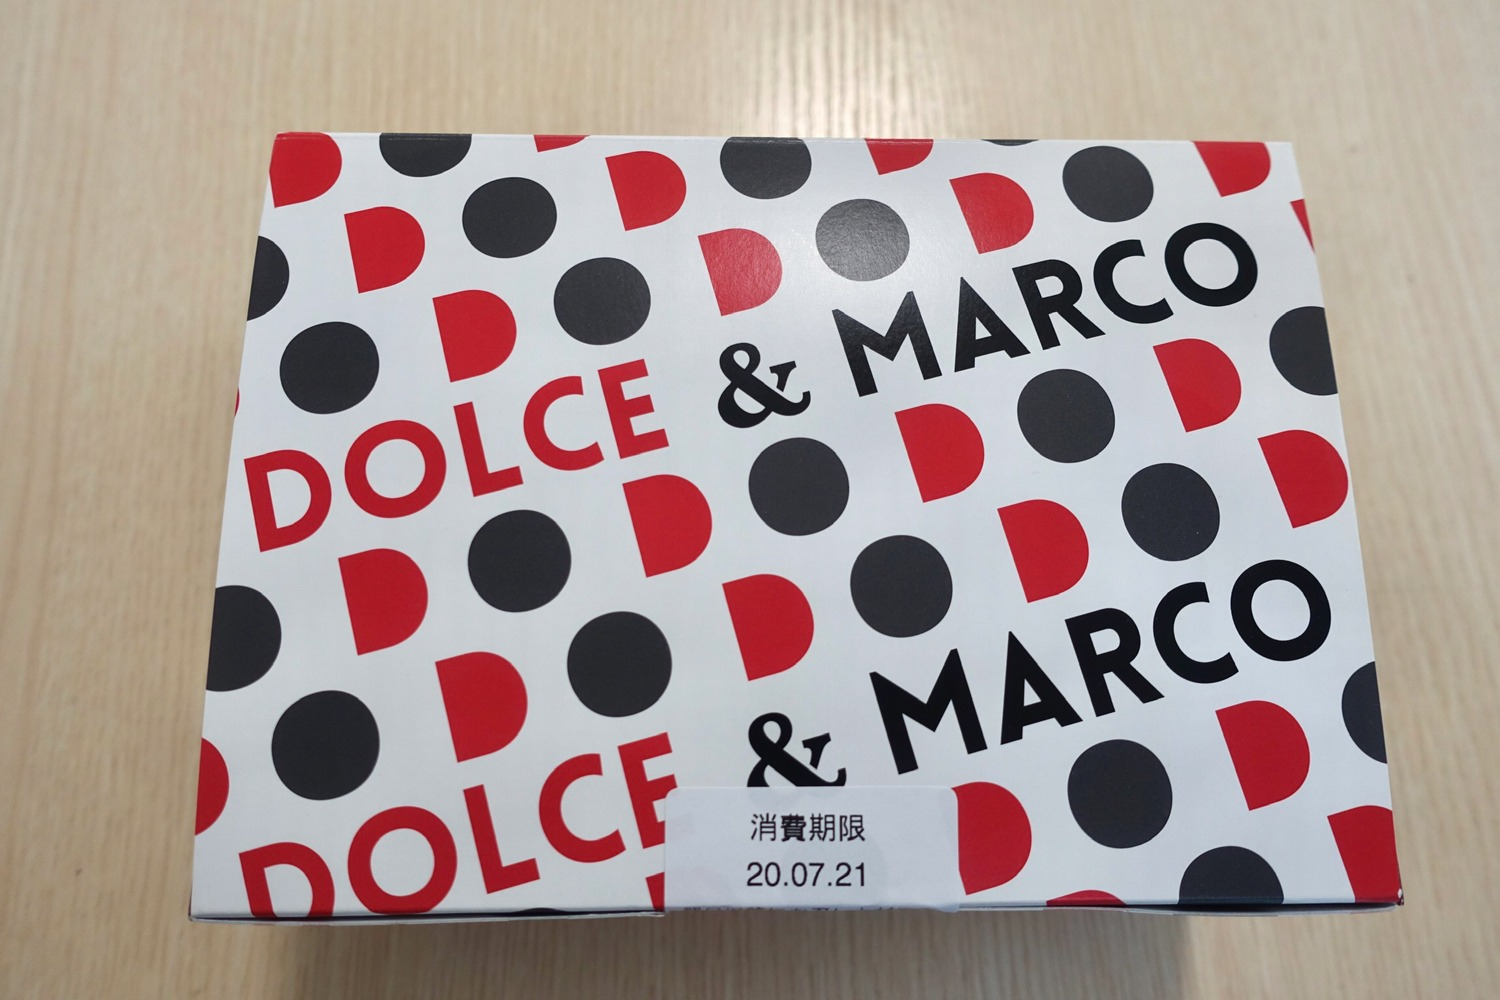 DOLCE&MARCO 新所沢店のD&Mお試しセット